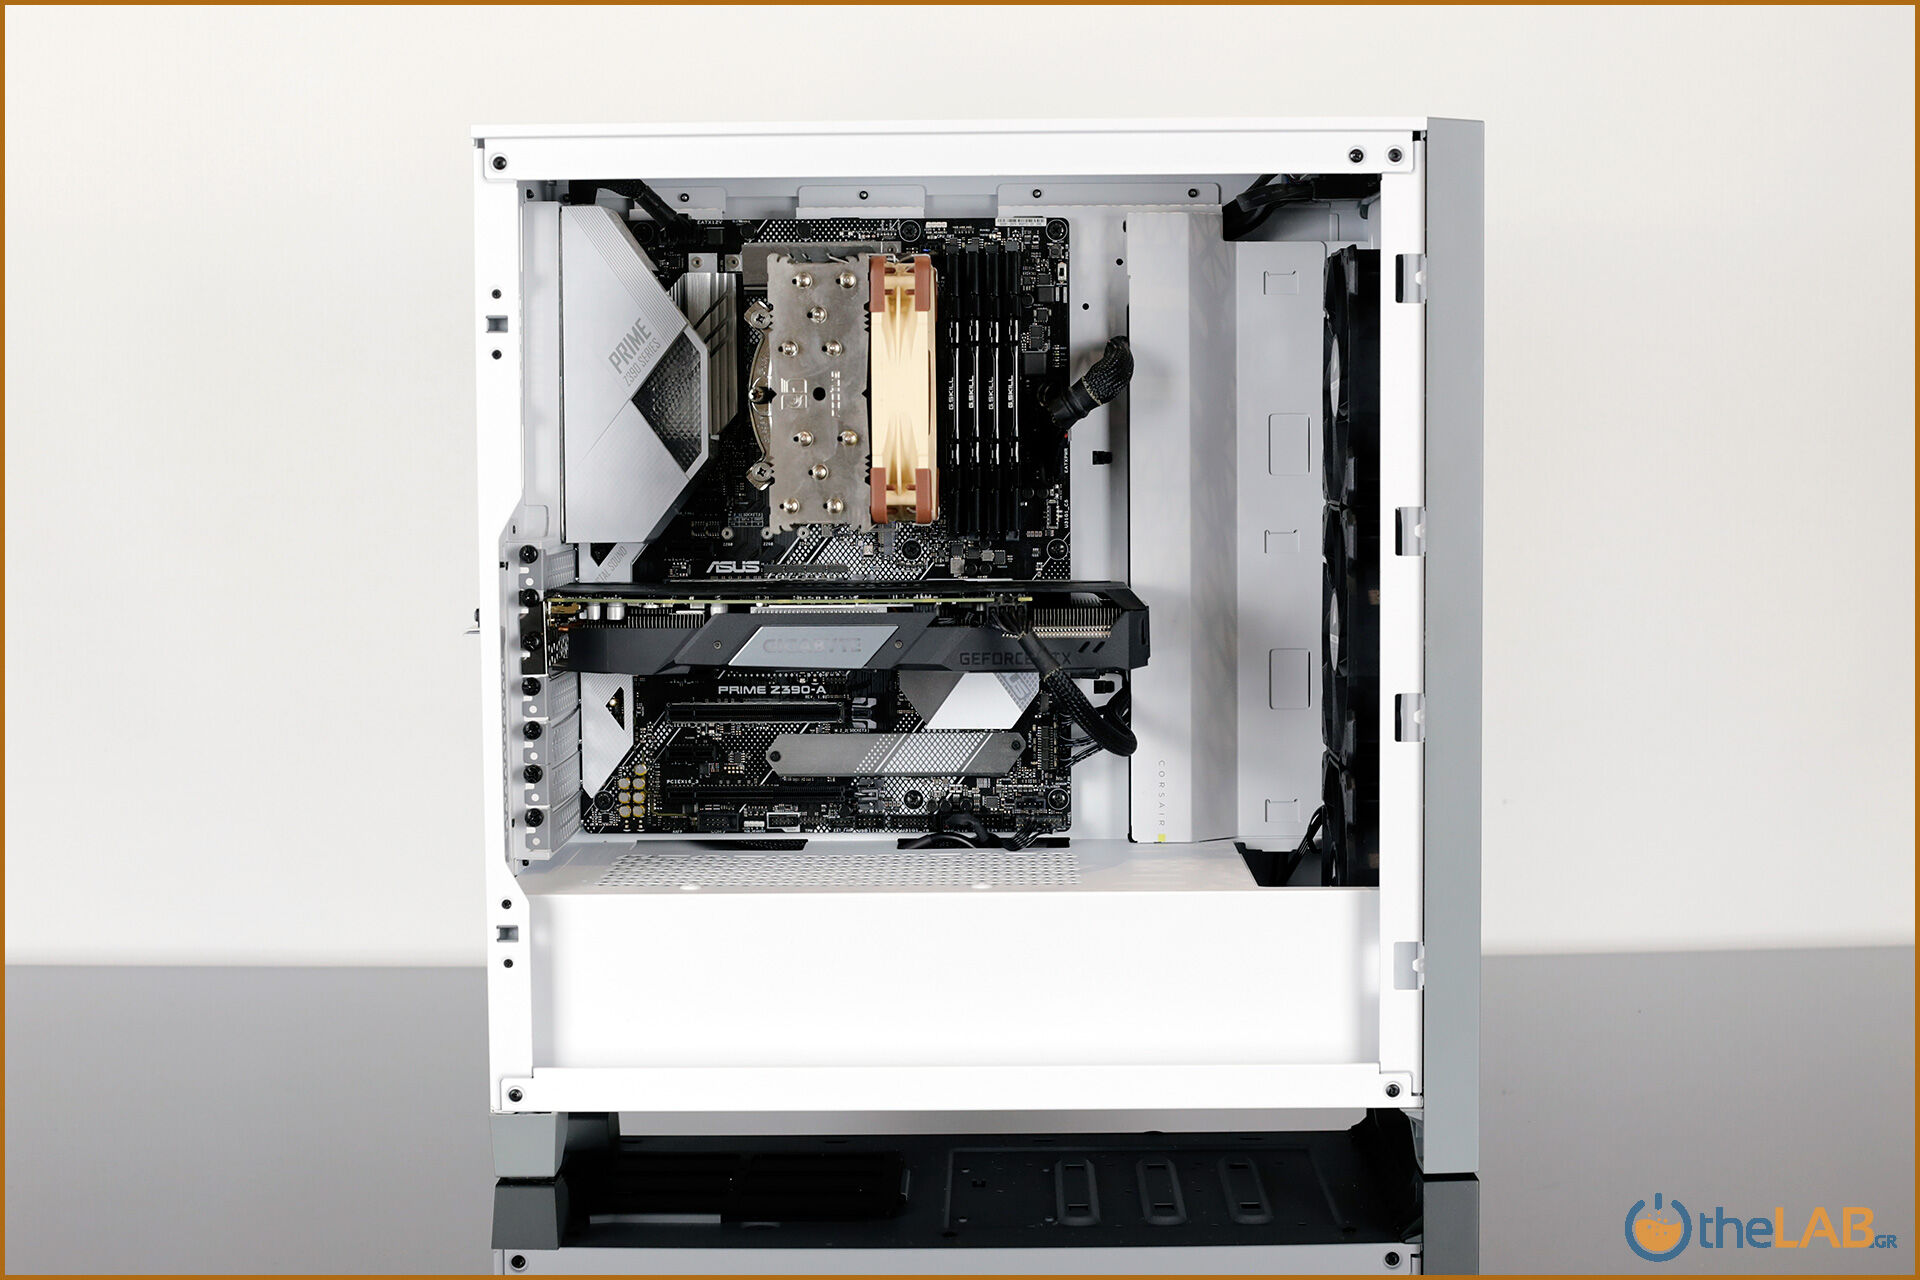 Corsair_icue_4000x_rgb_case_smart_exterior_interior_mid_tower_gaming_case_smart_review_image608.jpg